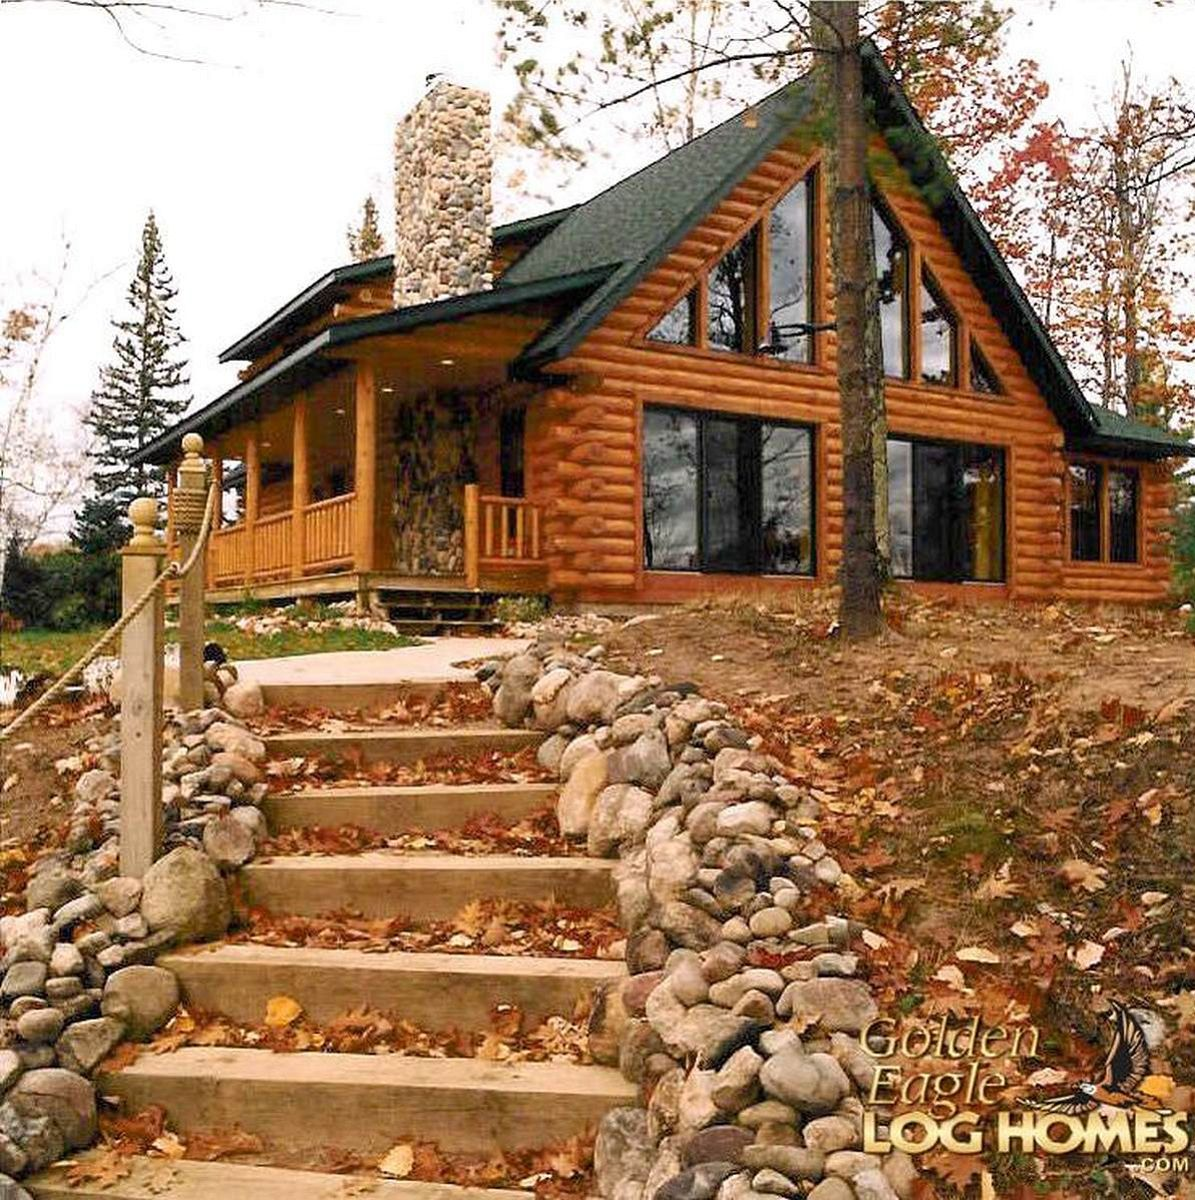 Log home by golden eagle log homes golden eagle log logs Stone cottage kit homes